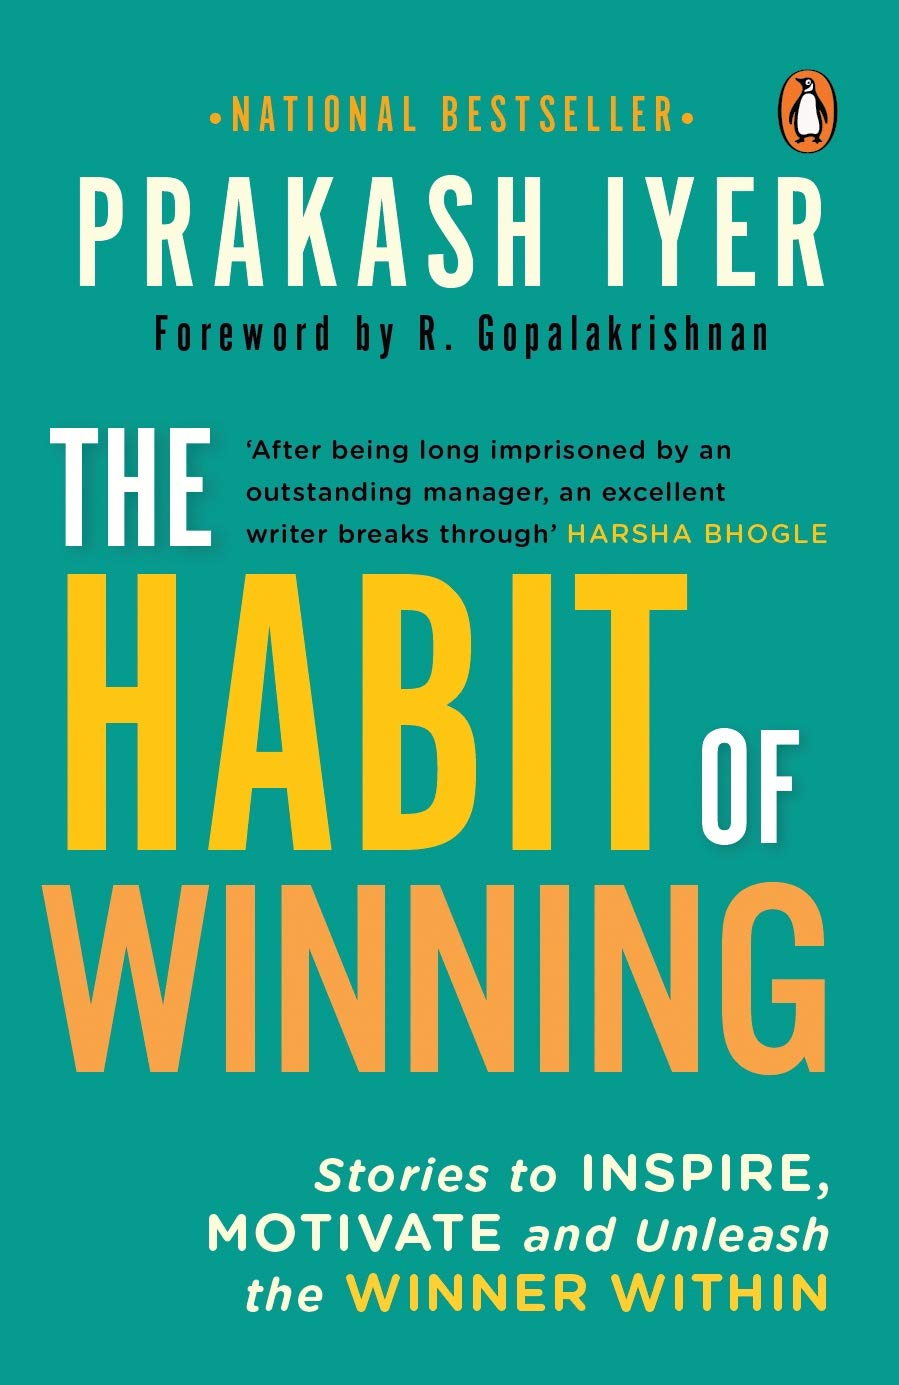 THE HABIT OF WINNING by PRAKASH IYER